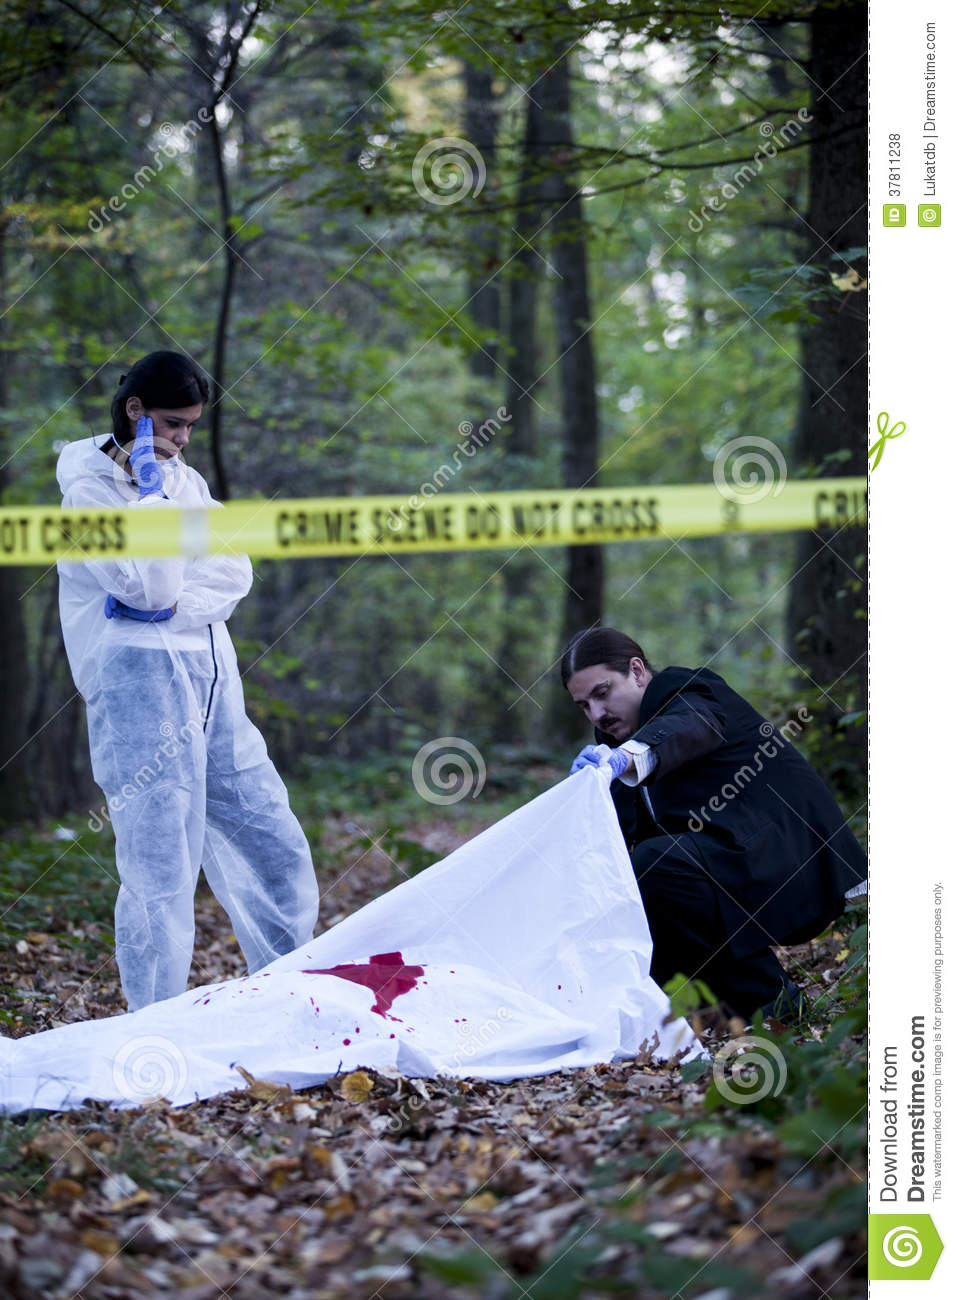 Crime Scene Investigation Royalty Free Stock Photos   Image  37811238